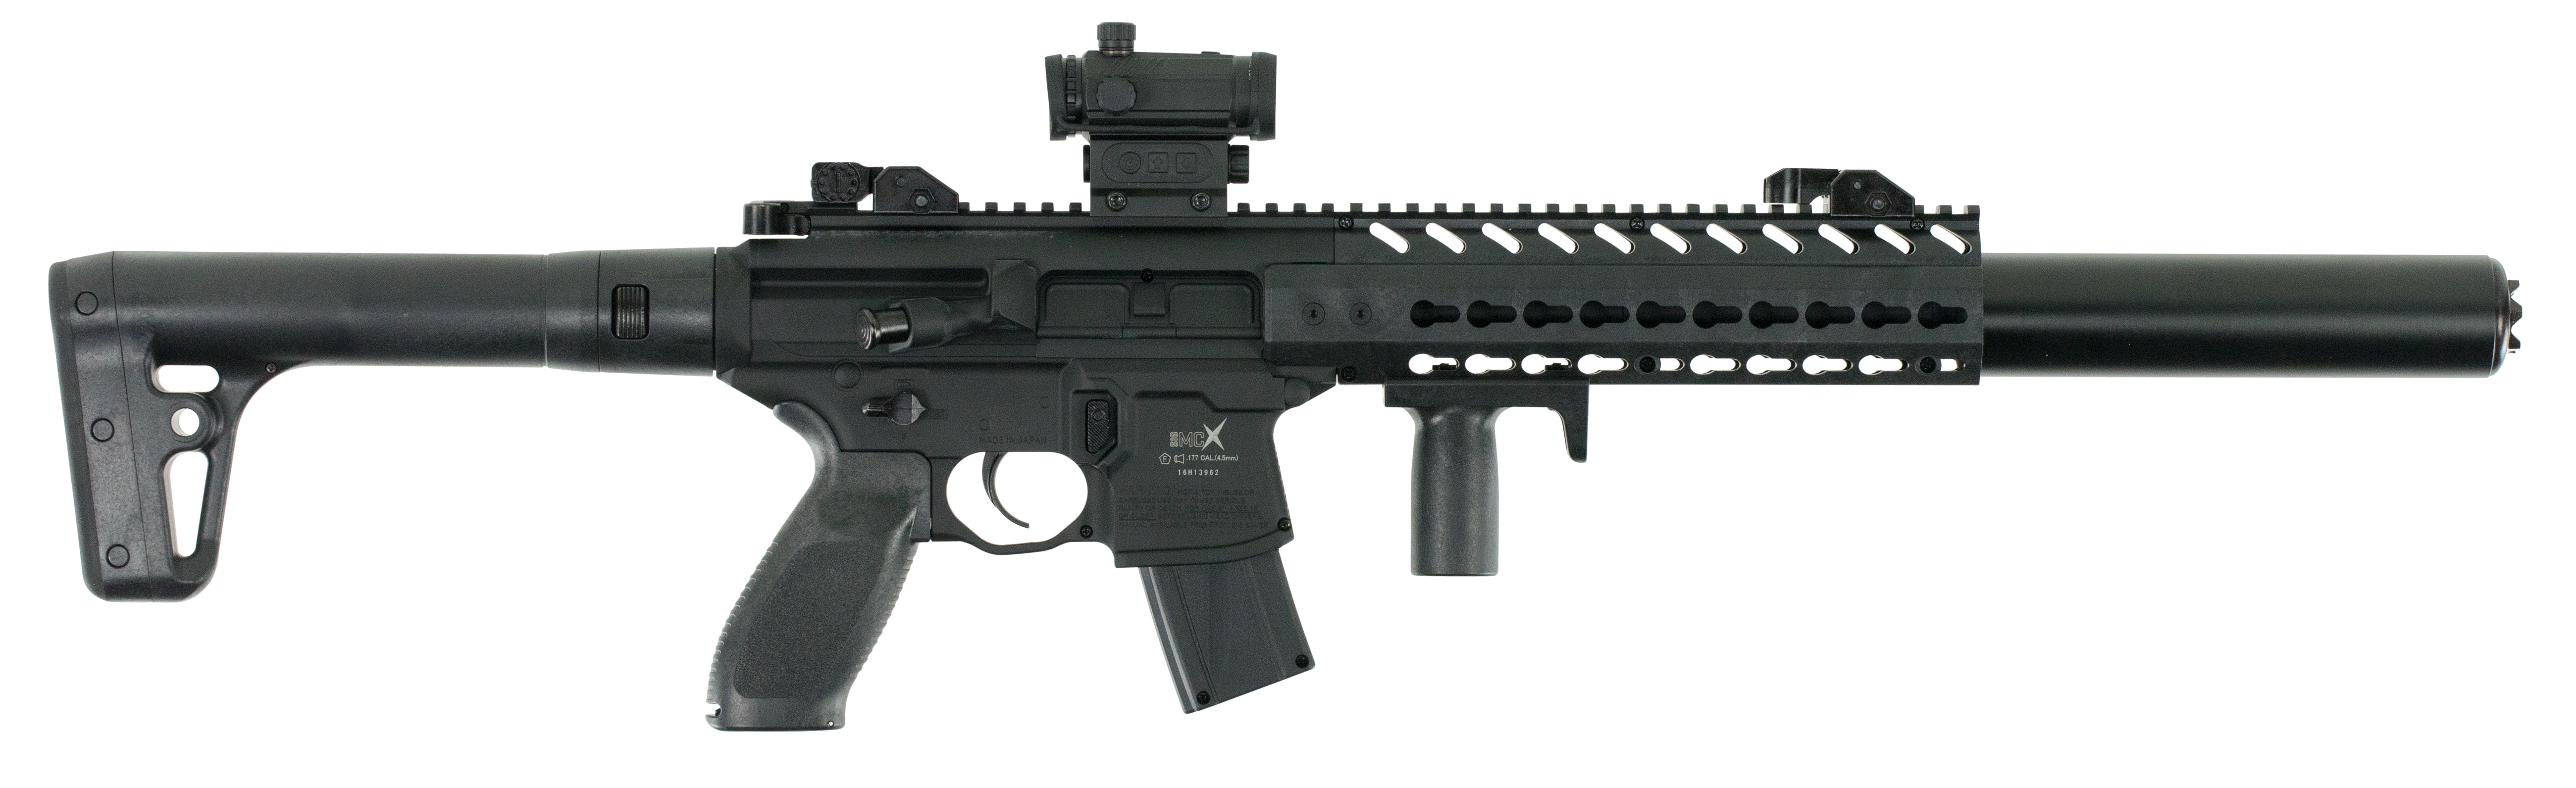 SIG Sauer MCX Red Dot Air Rifle CO2 Semi-Automatic .177 Pellet with Red Dot sight